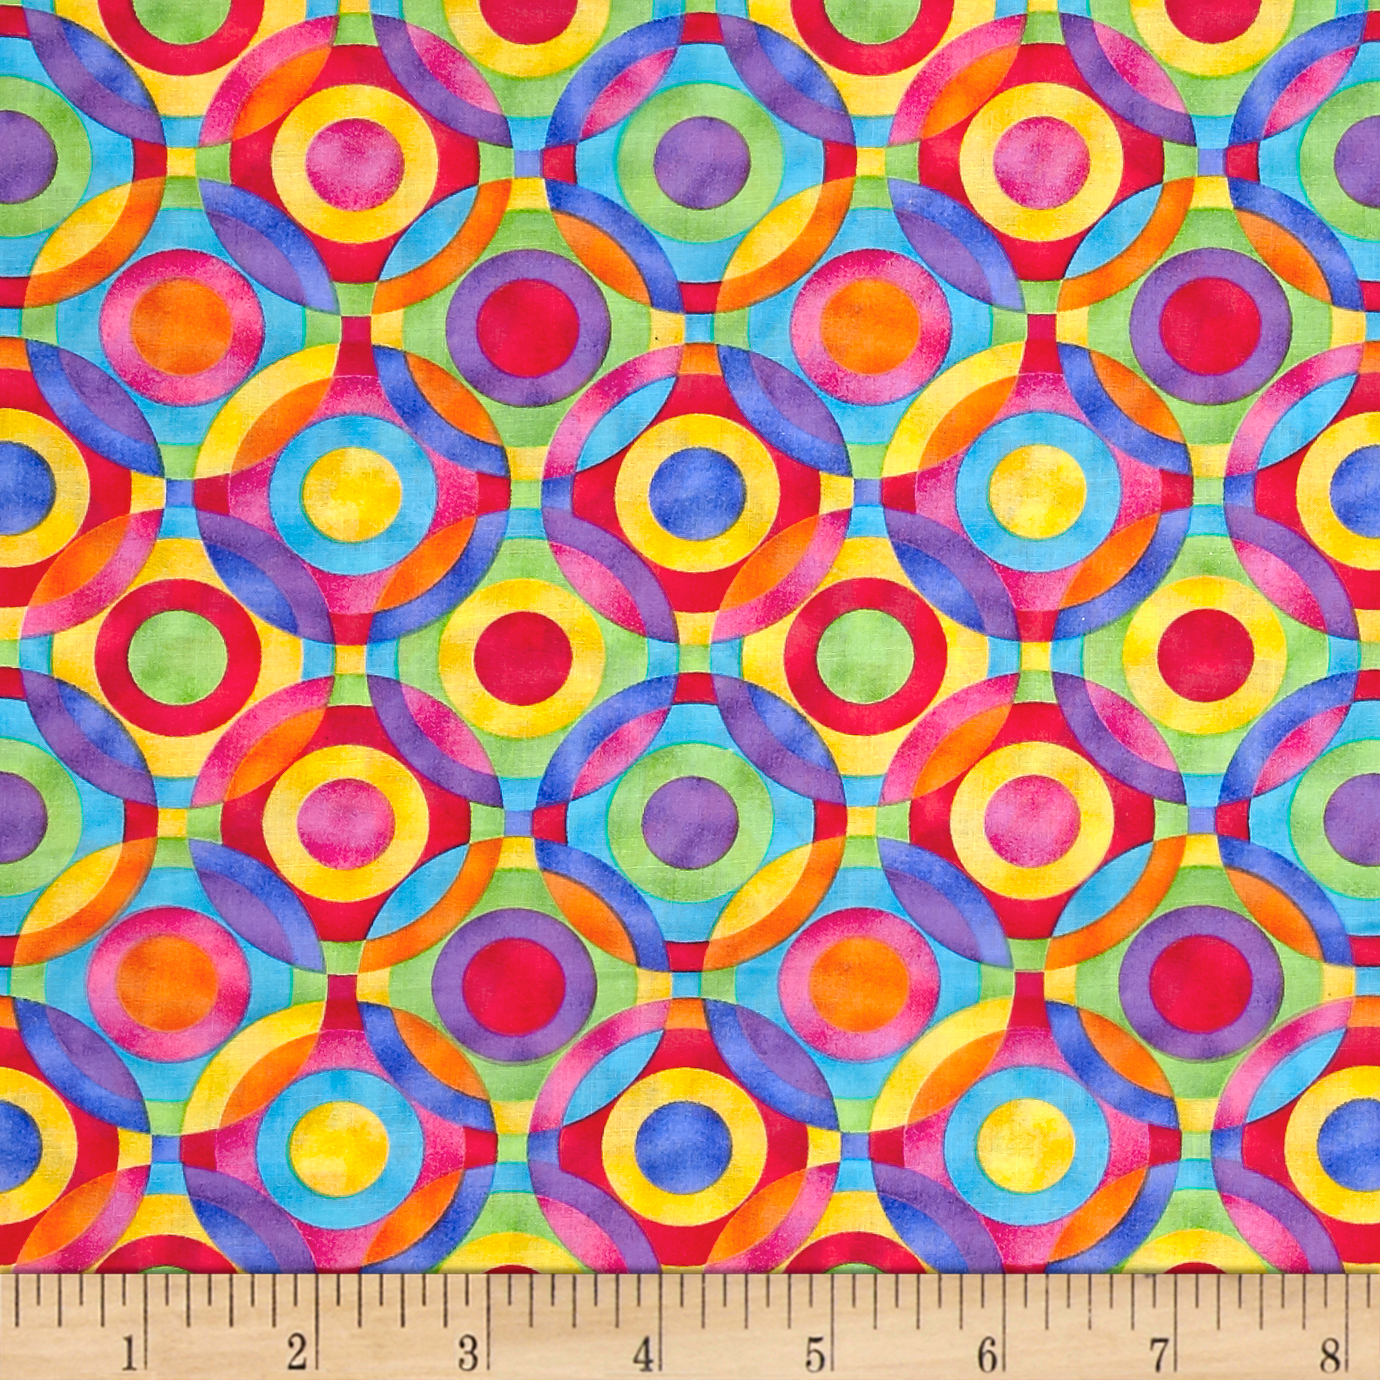 Rainbow Bright Geometric Circles Fabric by Fabric Traditions in USA